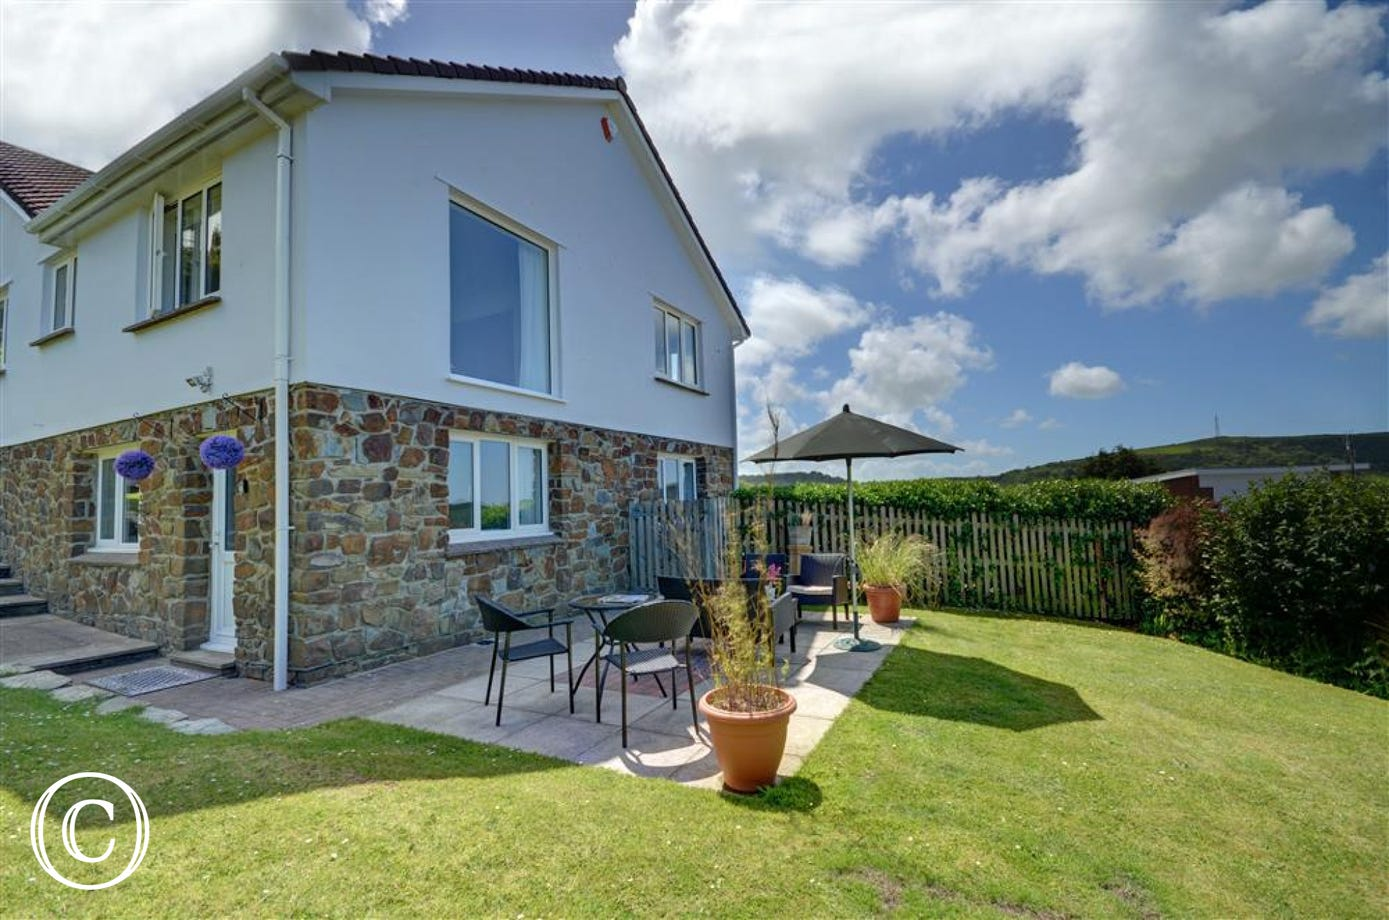 Farthings Nest provides a great holiday base for couples wanting to explore this part of North Devon